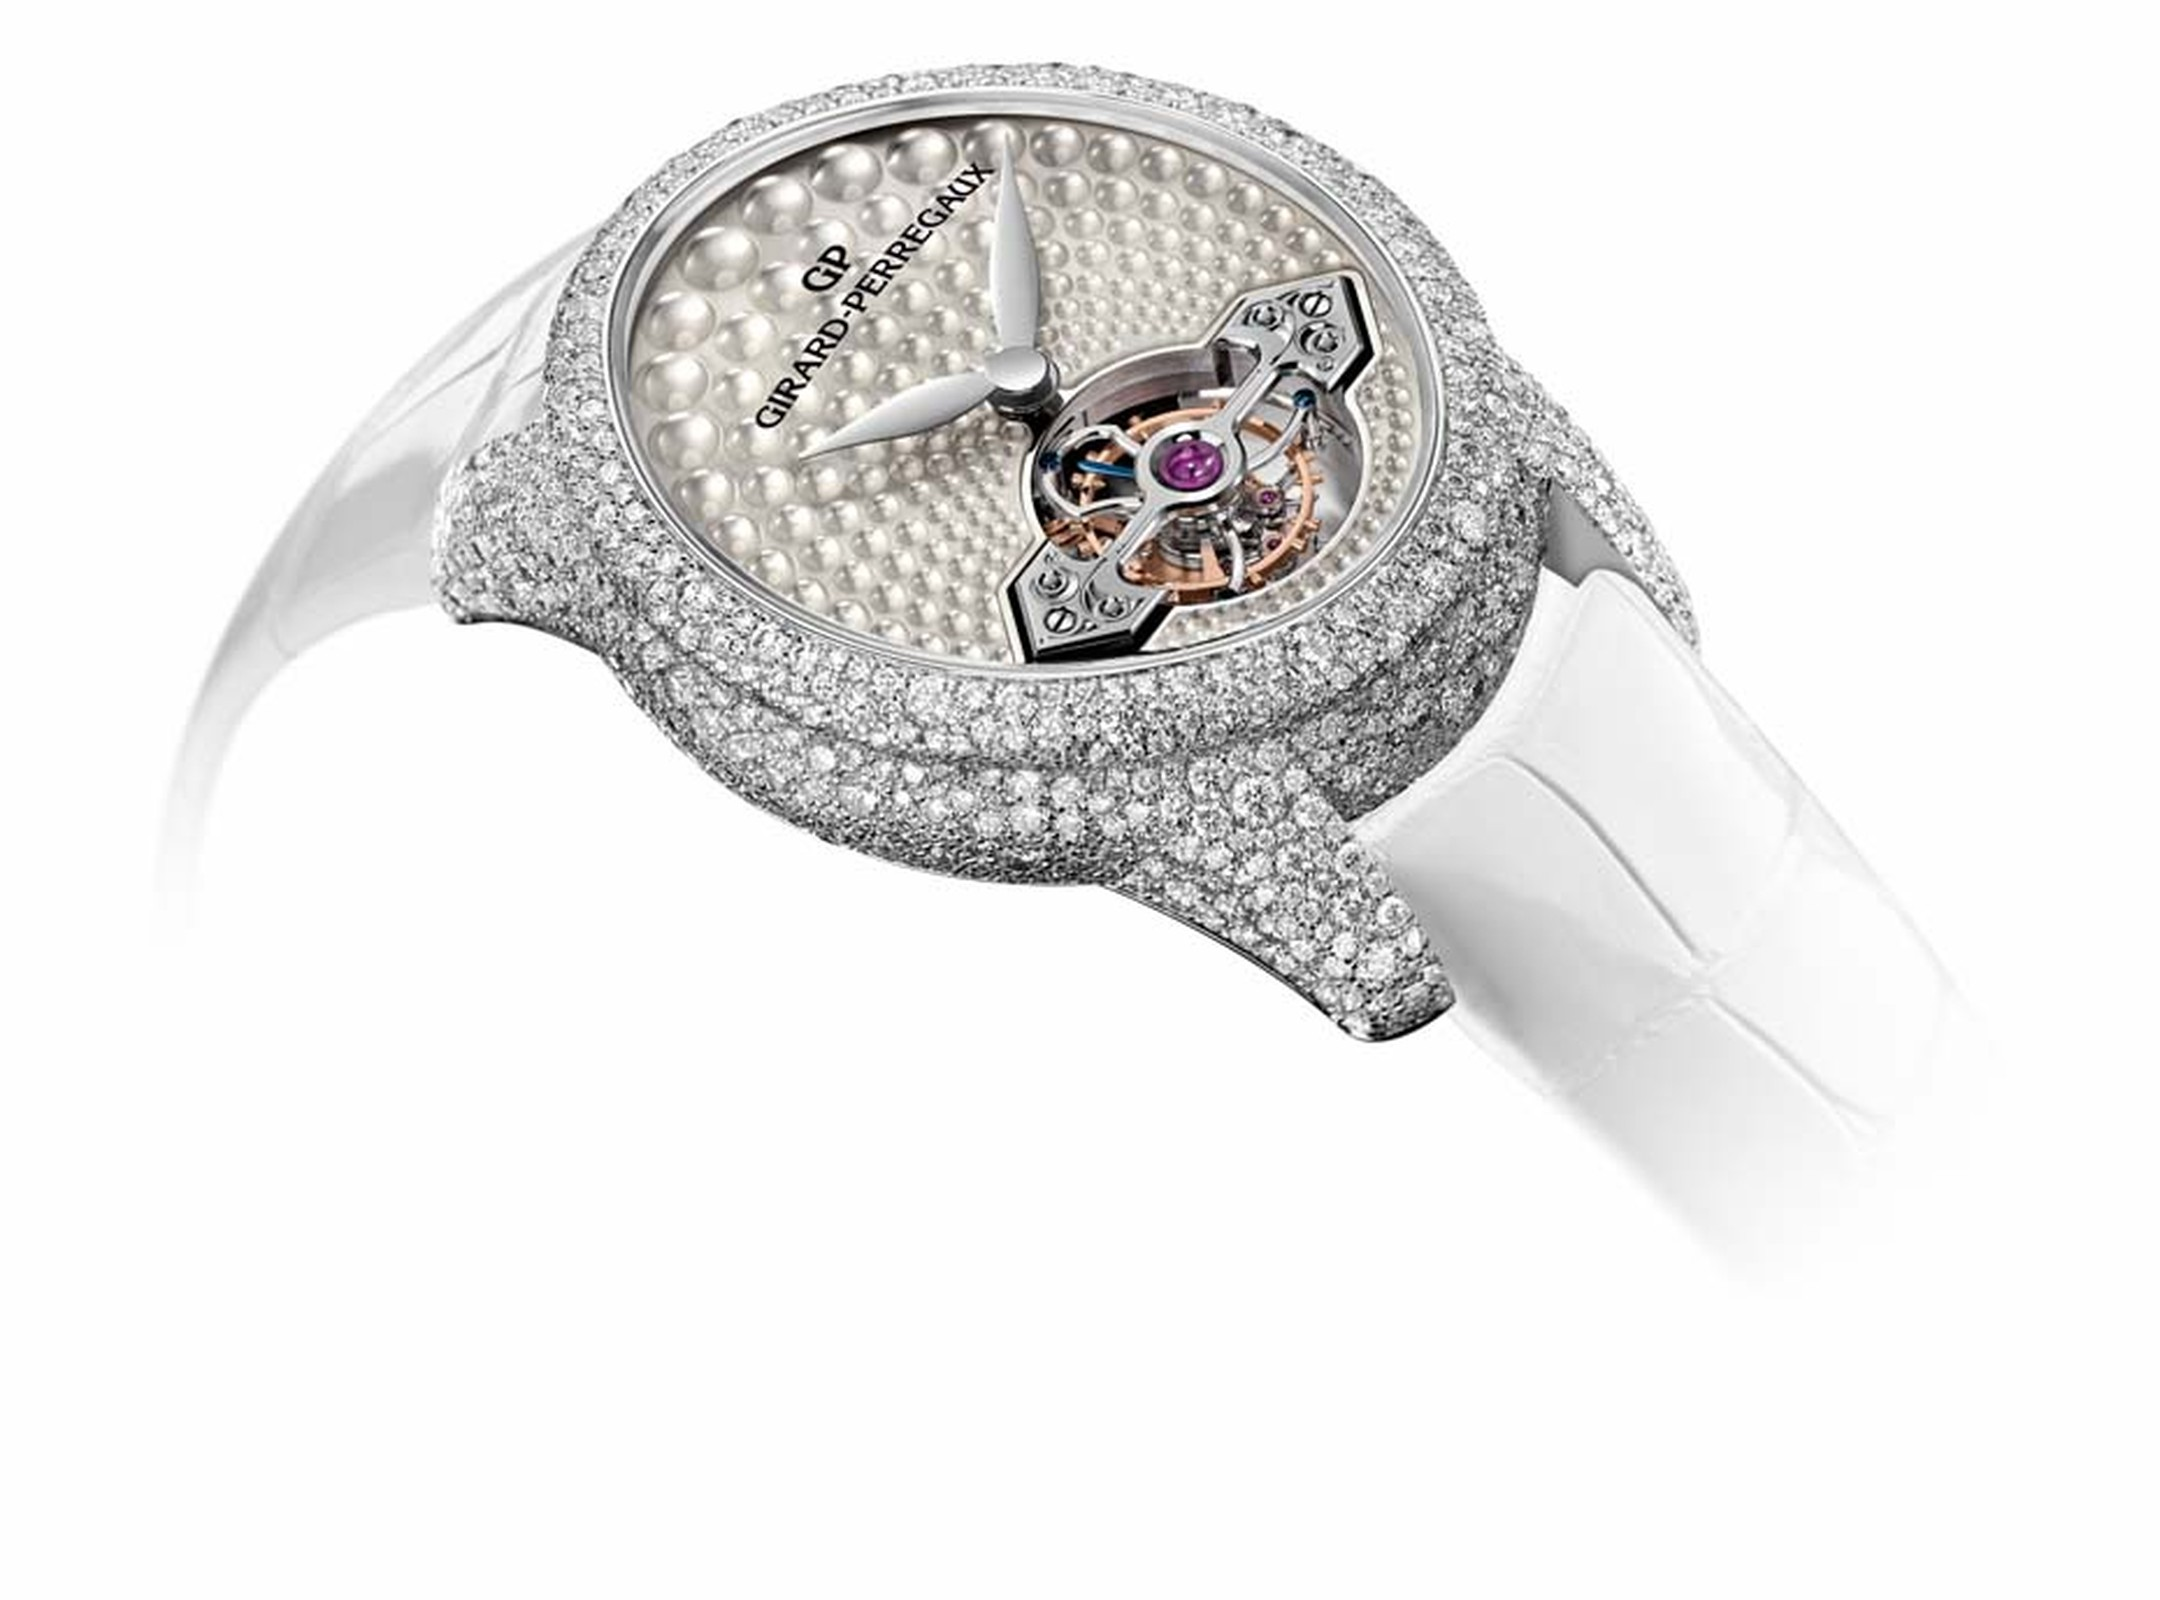 Girard-Perregaux Cat's Eye Jewellery watch features a tourbillon at 6 o'clock powered by an in-house manually-wound movement.